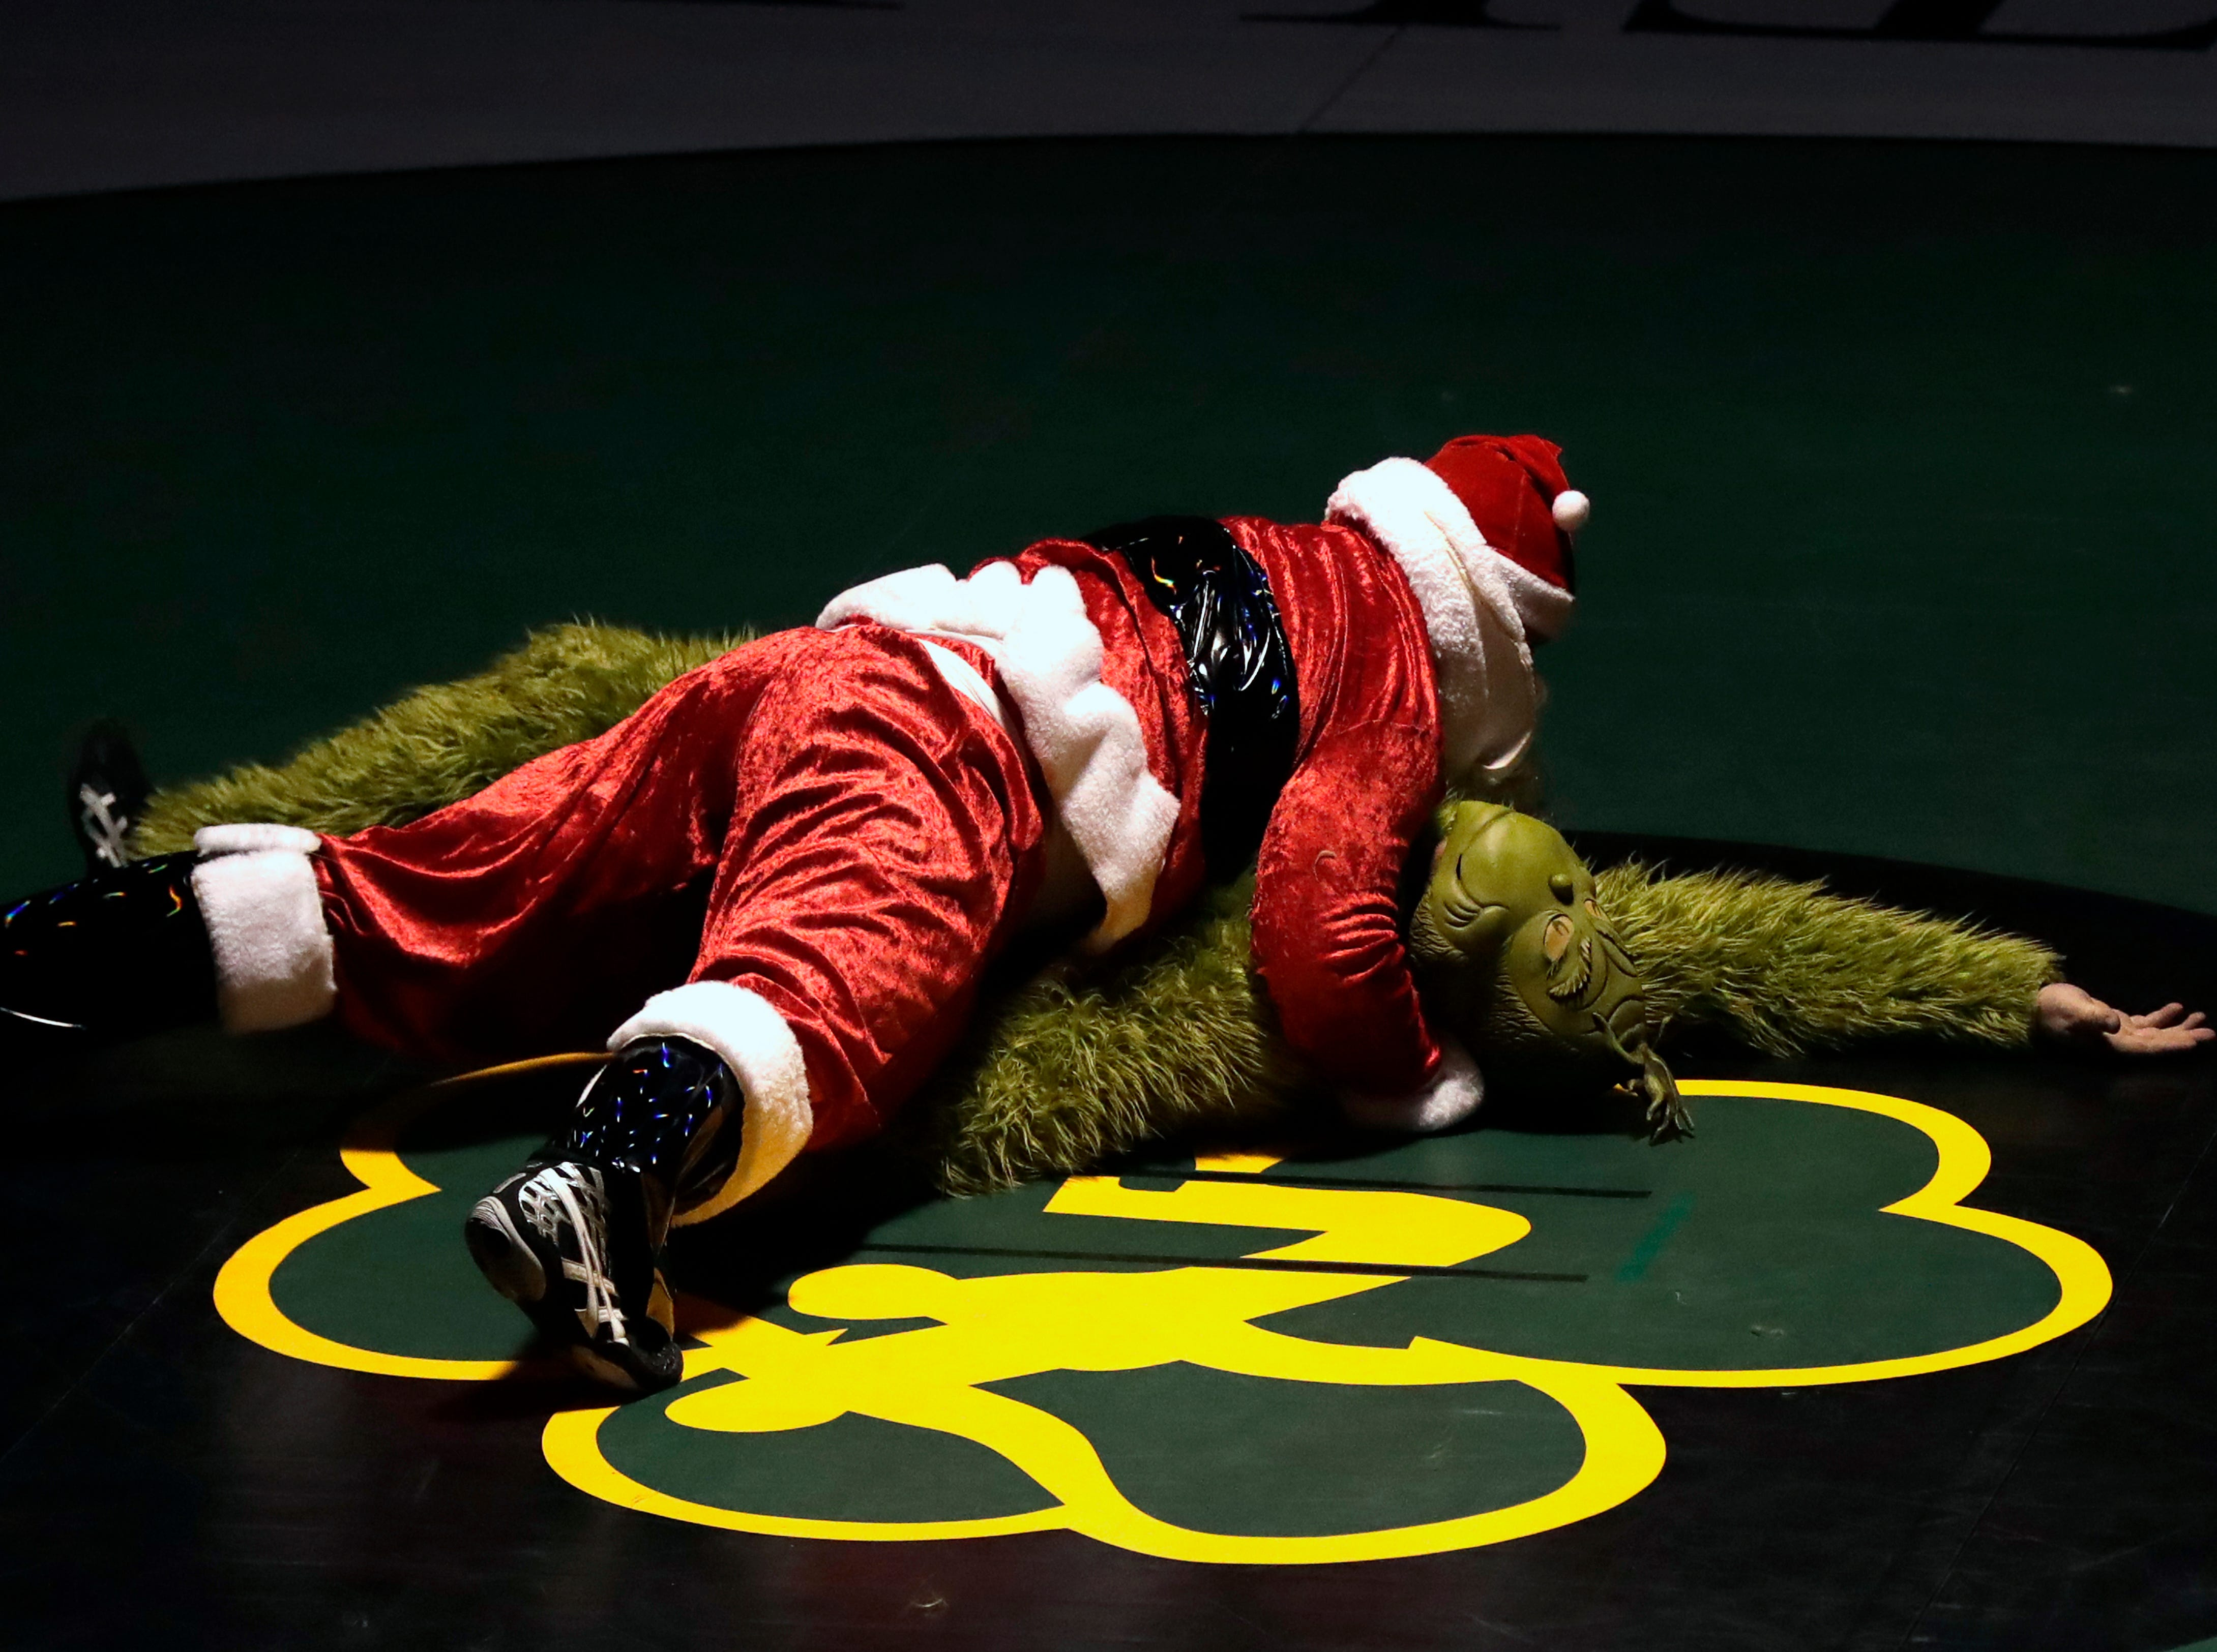 Santa pins The Grinch prior to Freedom High School against Waupaca High School during their wrestling meet Thursday, December 6, 2018, in Freedom, Wis. 